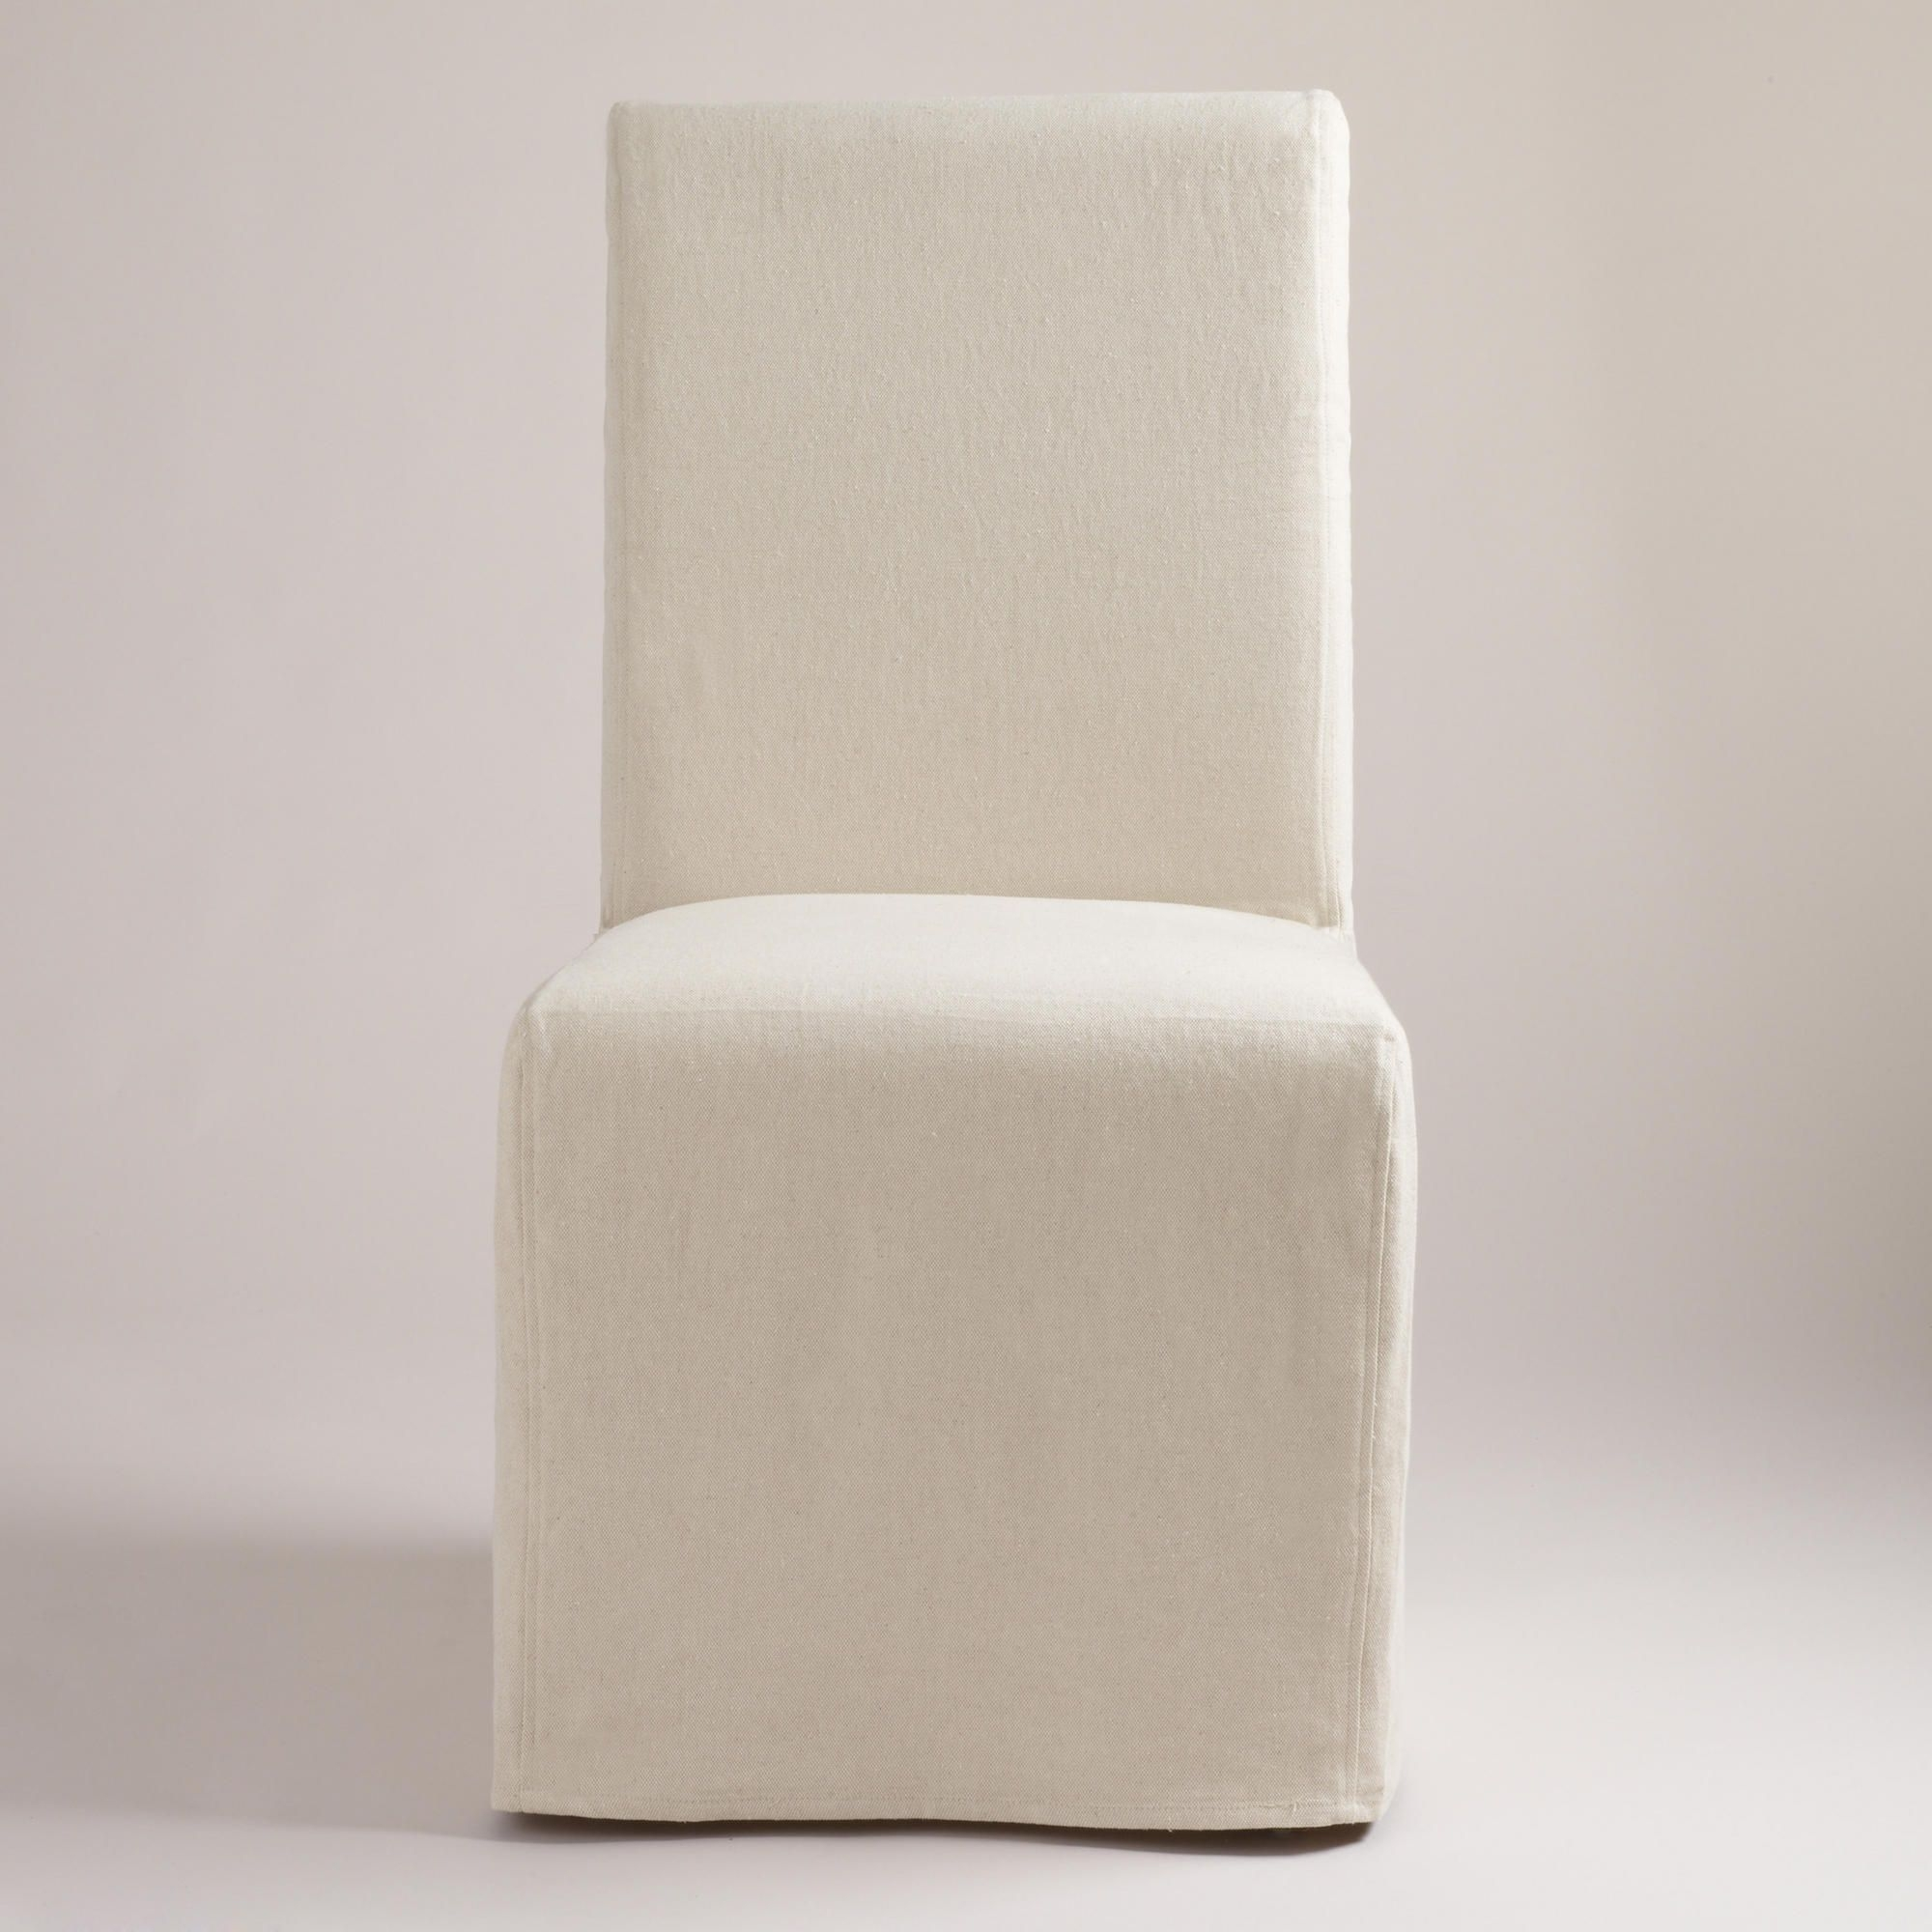 Fashionable Pearson Grey Slipcovered Side Chairs In Linen Anna Long Chair Slipcovers, Set Of  (#5 of 20)